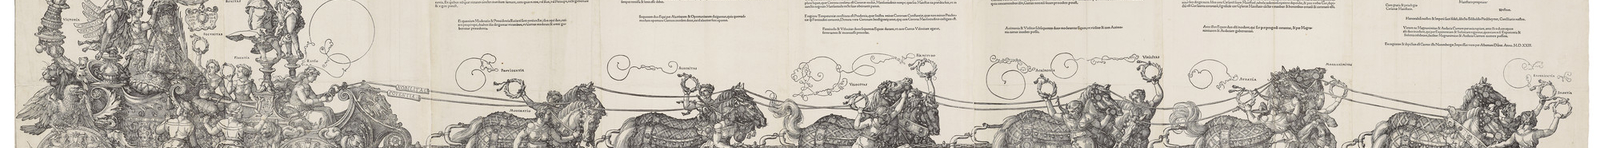 A woodcut showing the Emperor Maximilian in a triumphal chariot.This large woodcut, over 2 metres in length, was originally planned as part of a huge printed frieze. The work, undertaken by a team of designers and woodblock cutters, was to show a triumpha